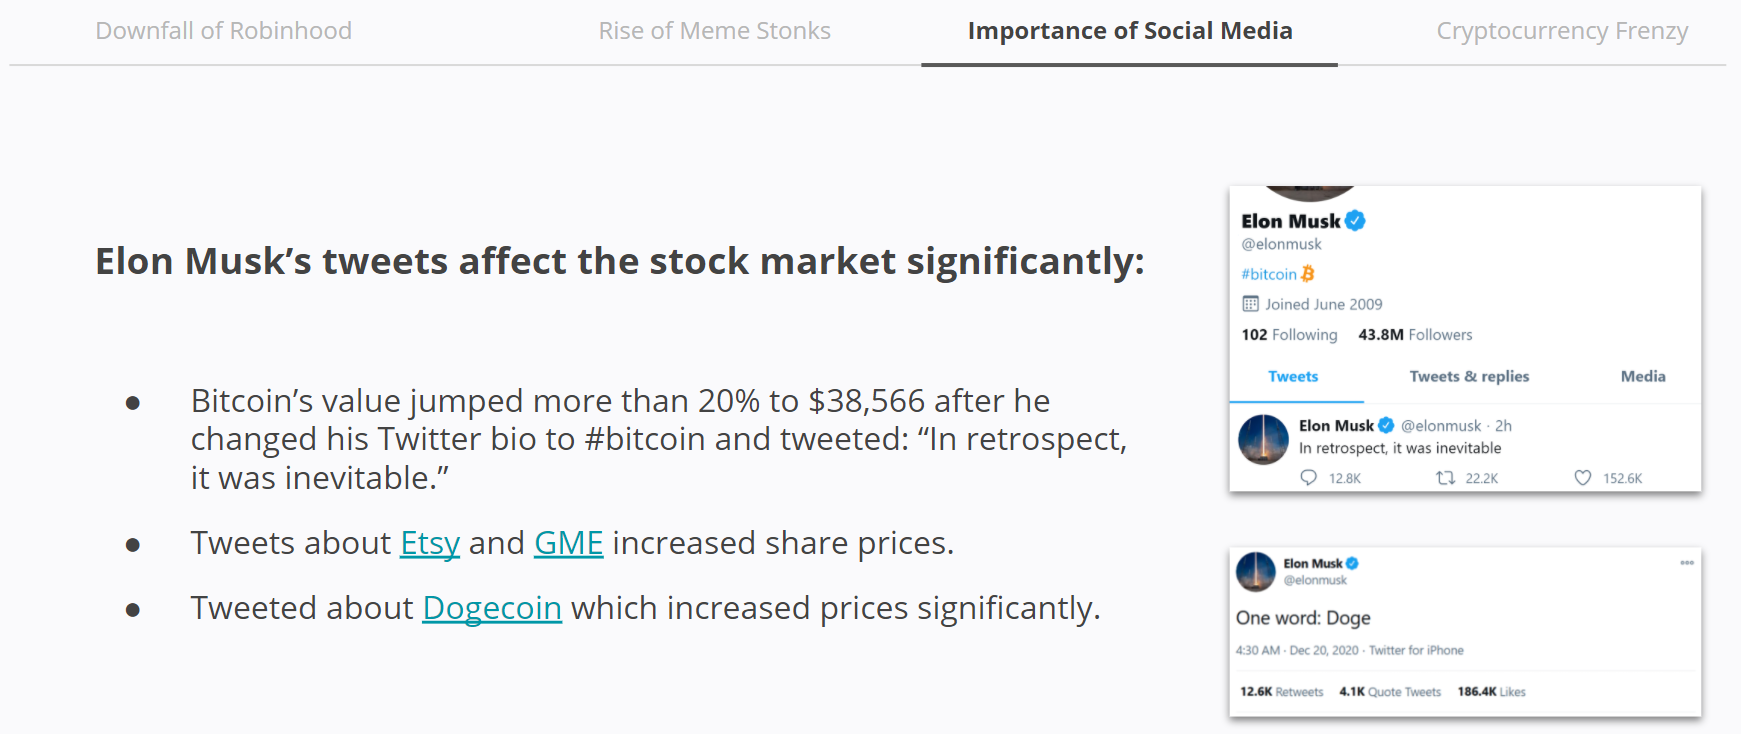 Meme Stonks - Elon Musk tweets affect the stock market significantly